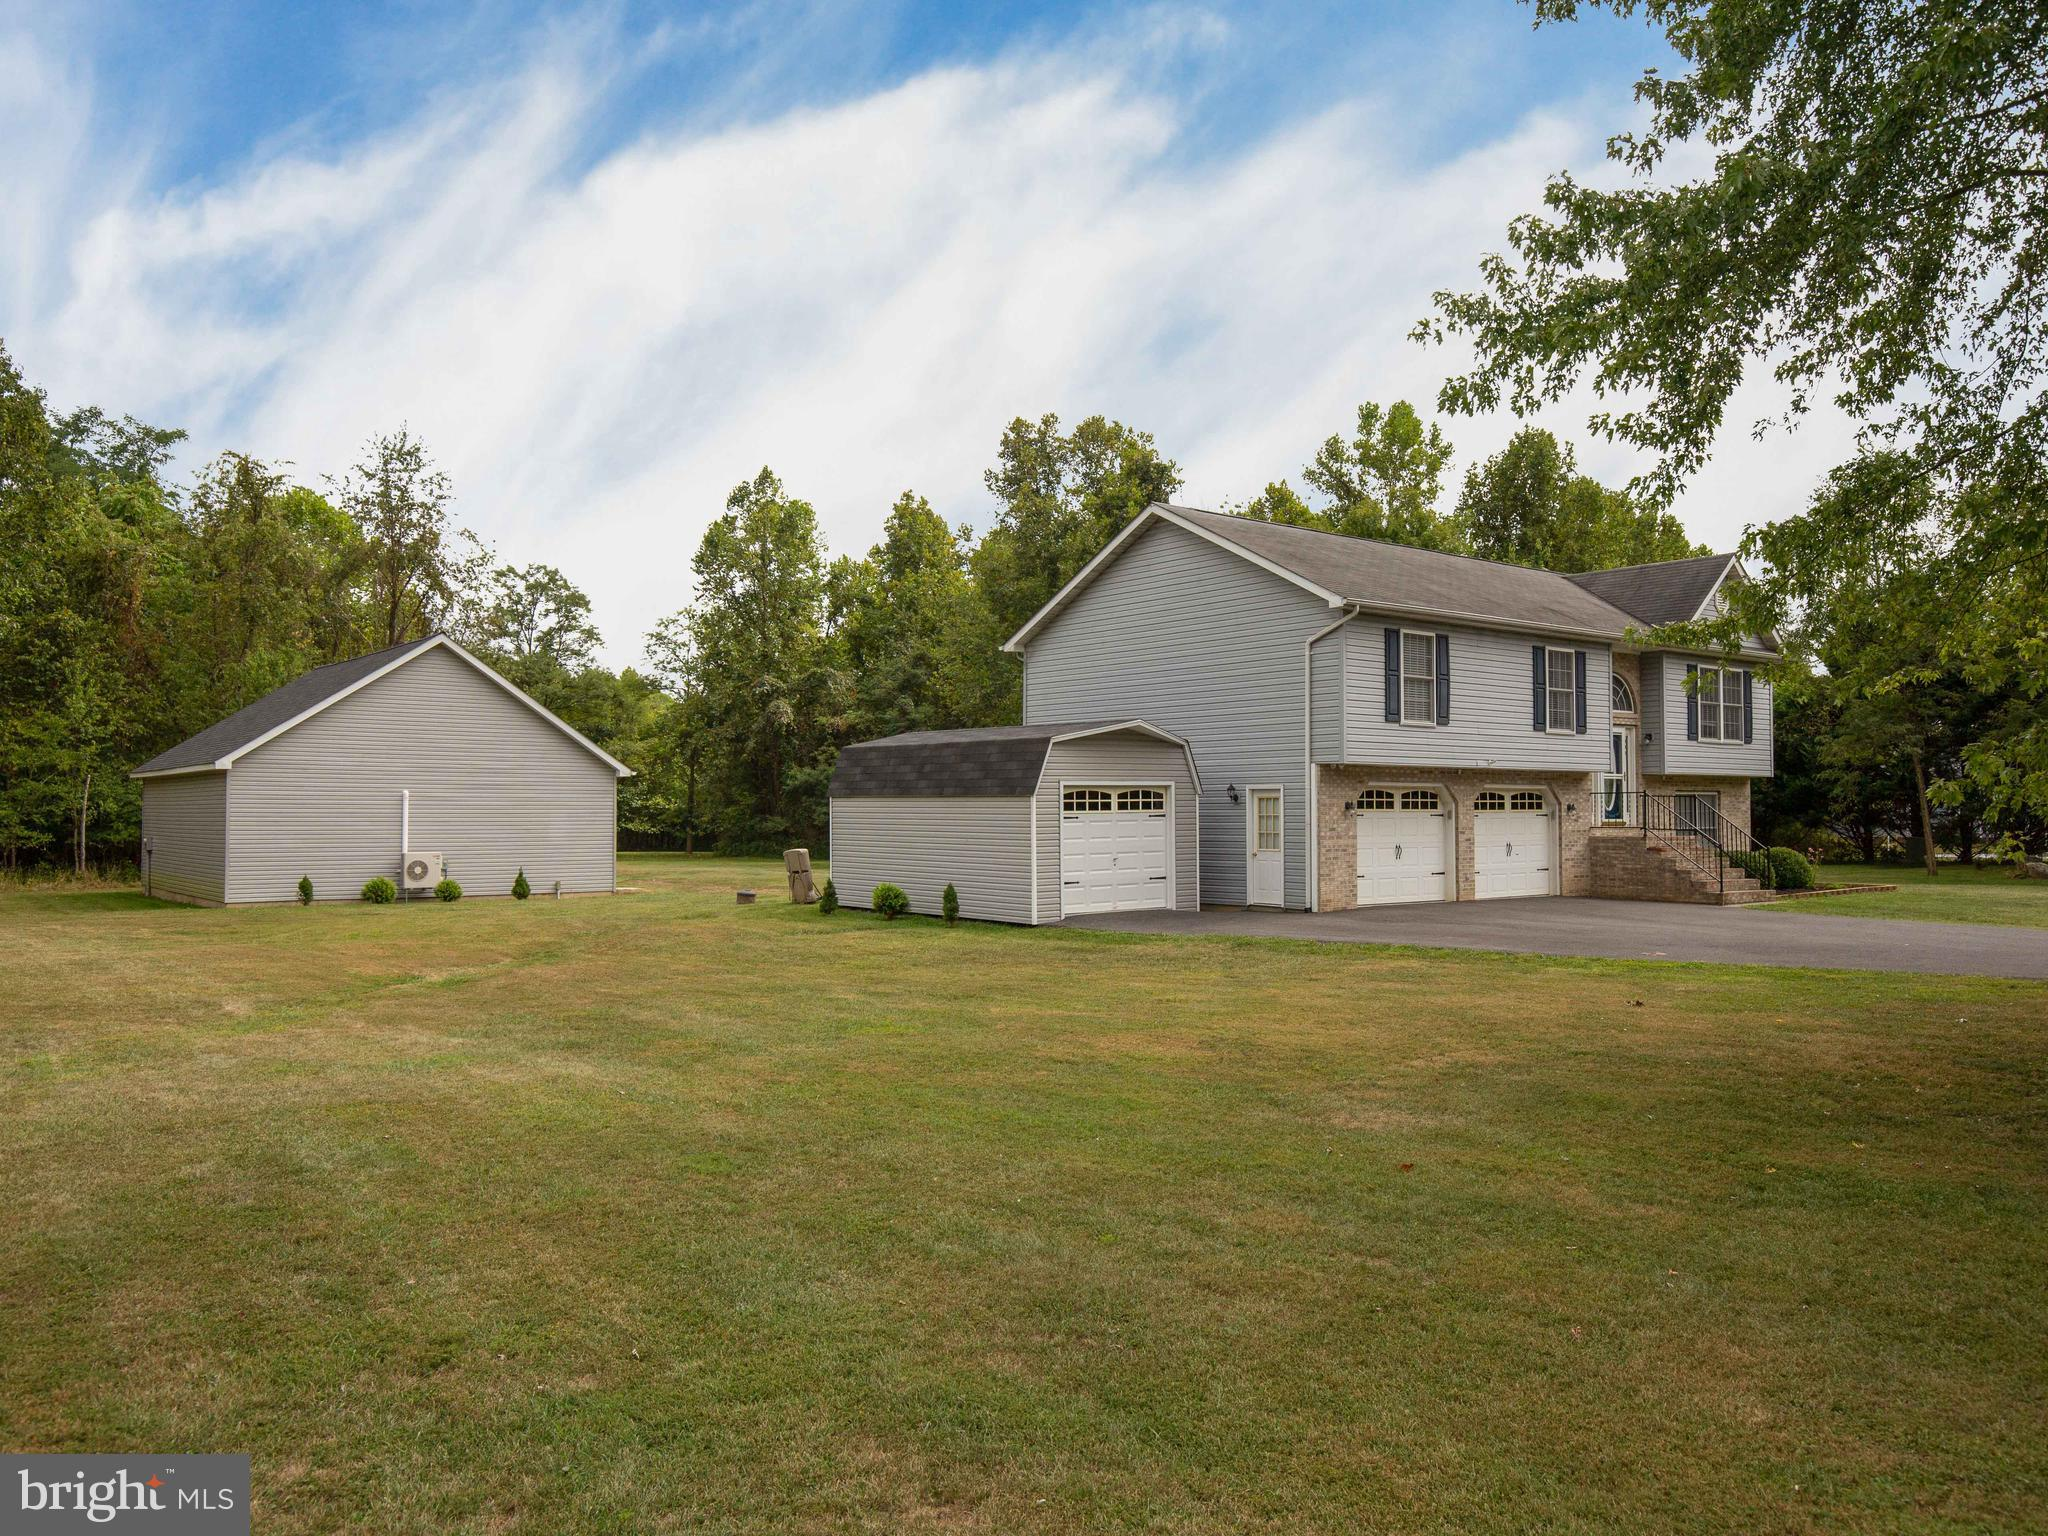 344 ORCHARD DALE DRIVE, CLEAR BROOK, VA 22624